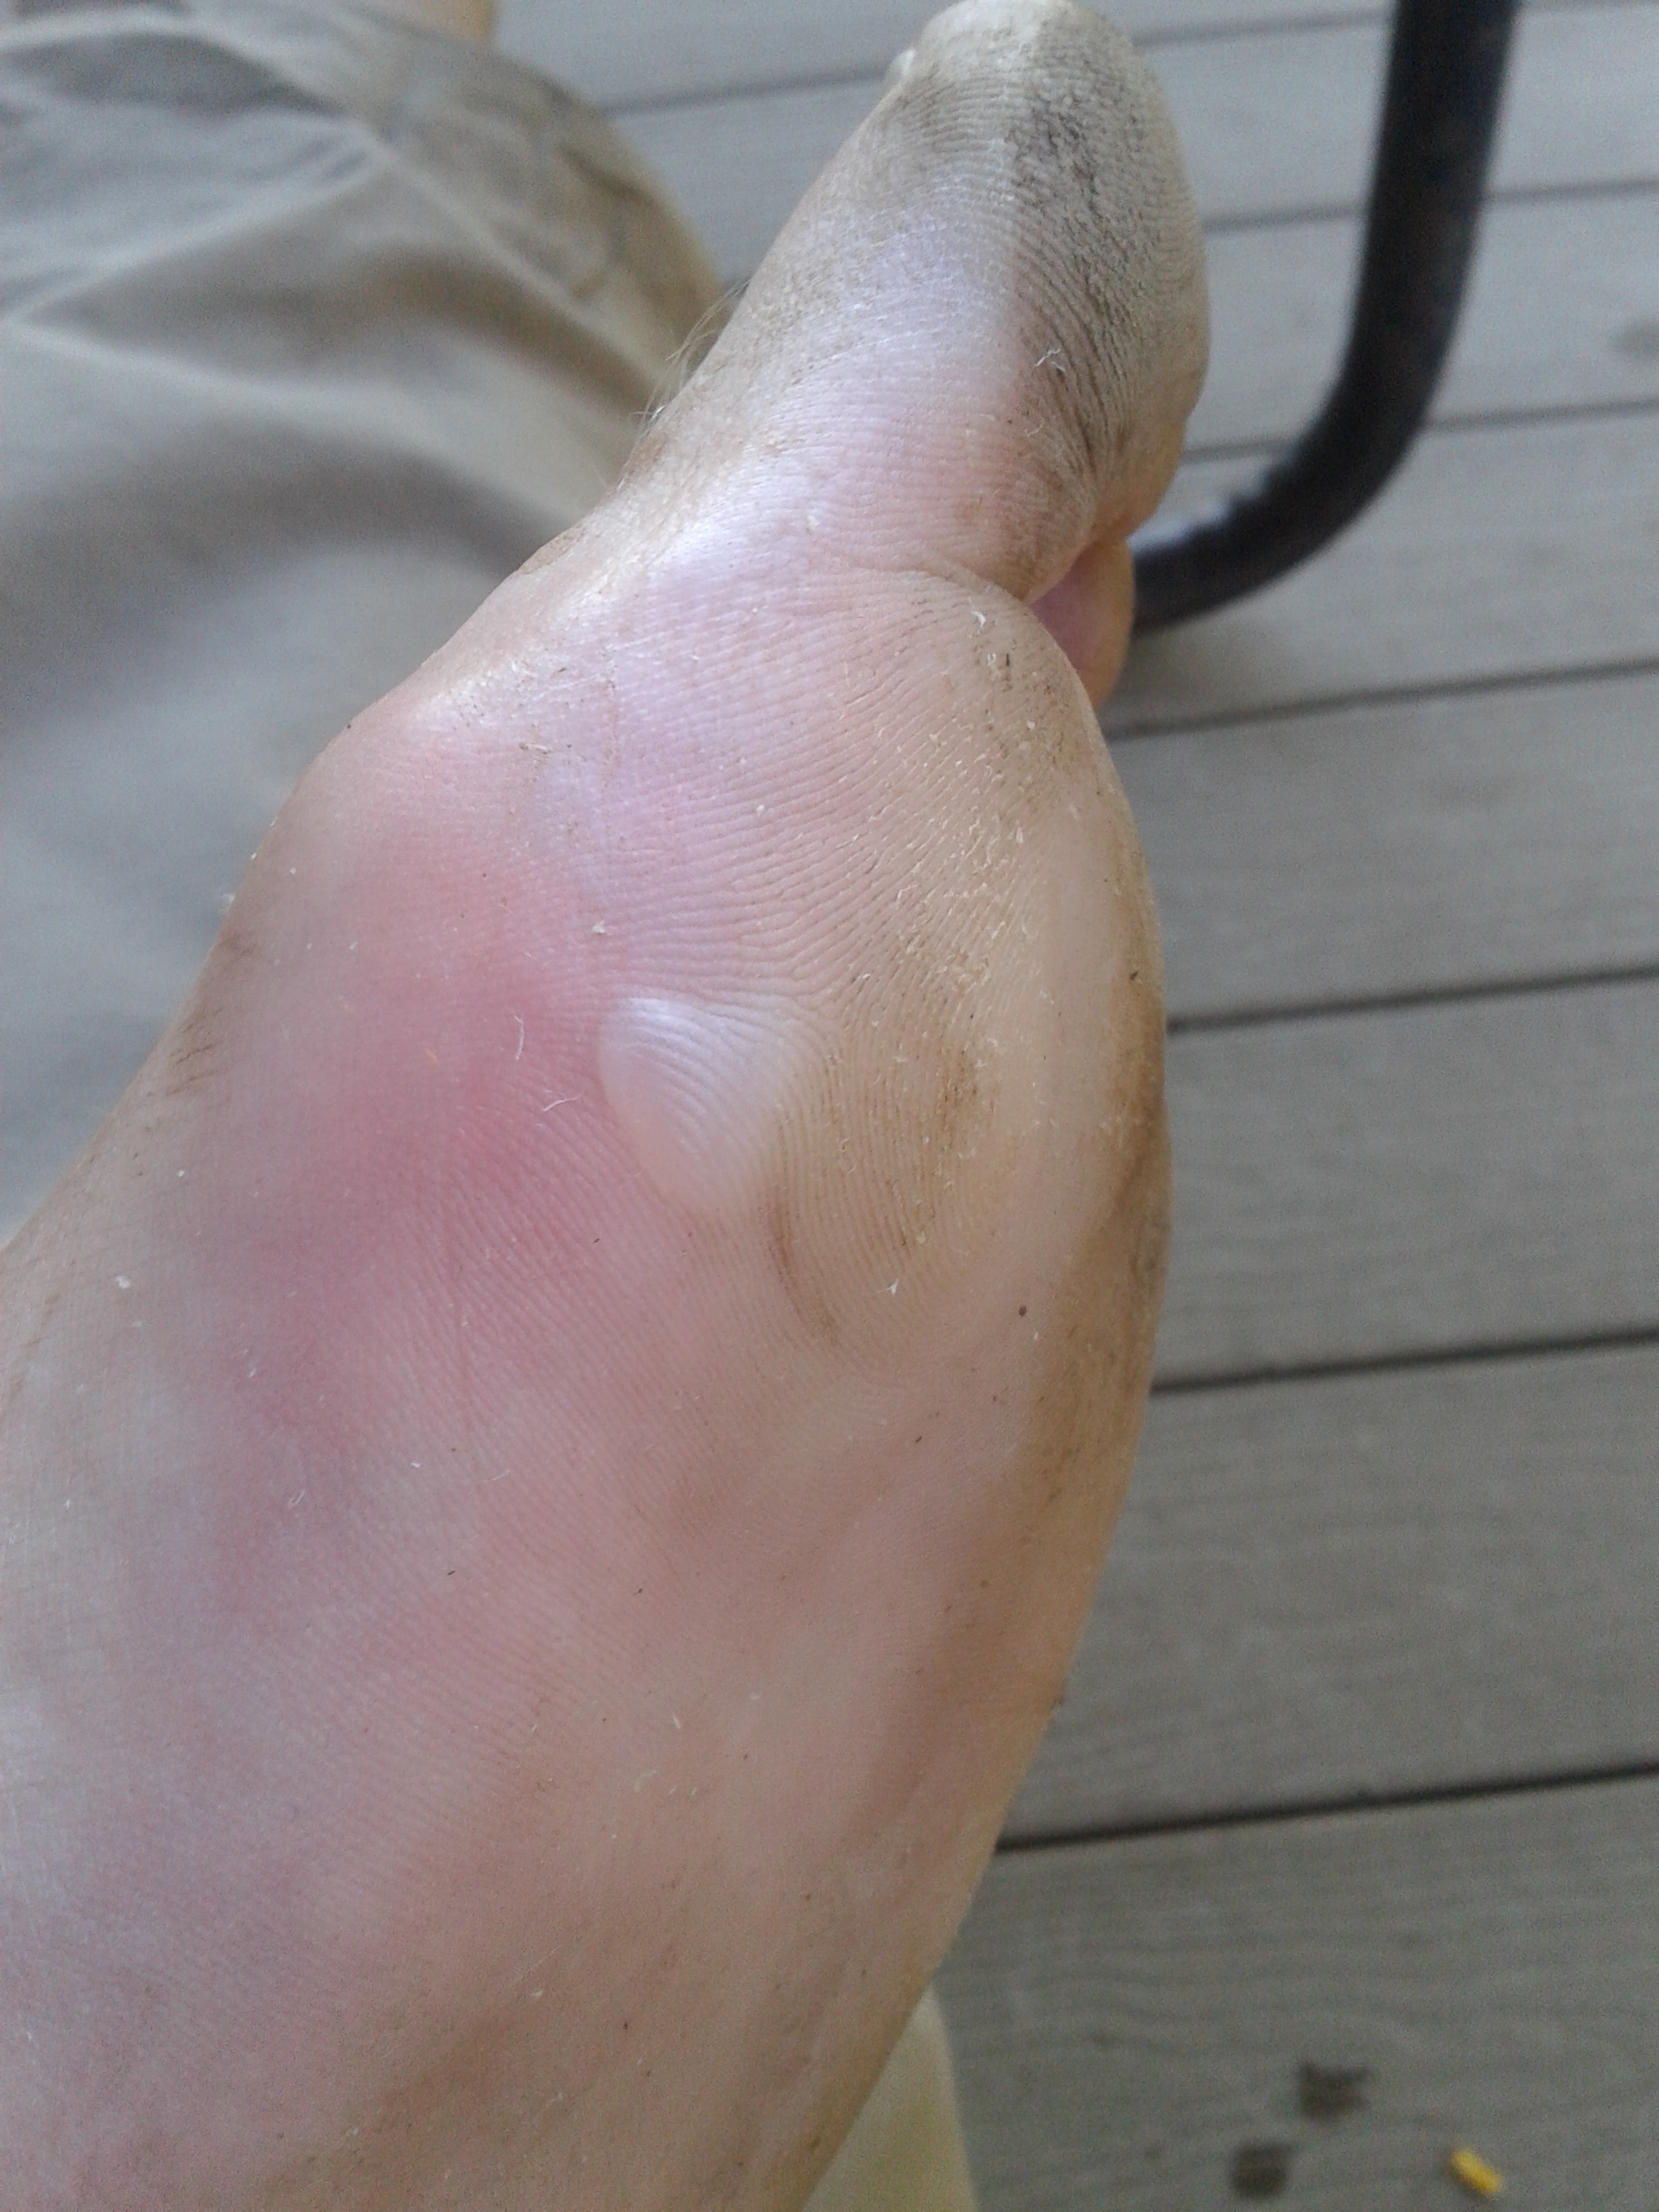 how to keep running with a blister